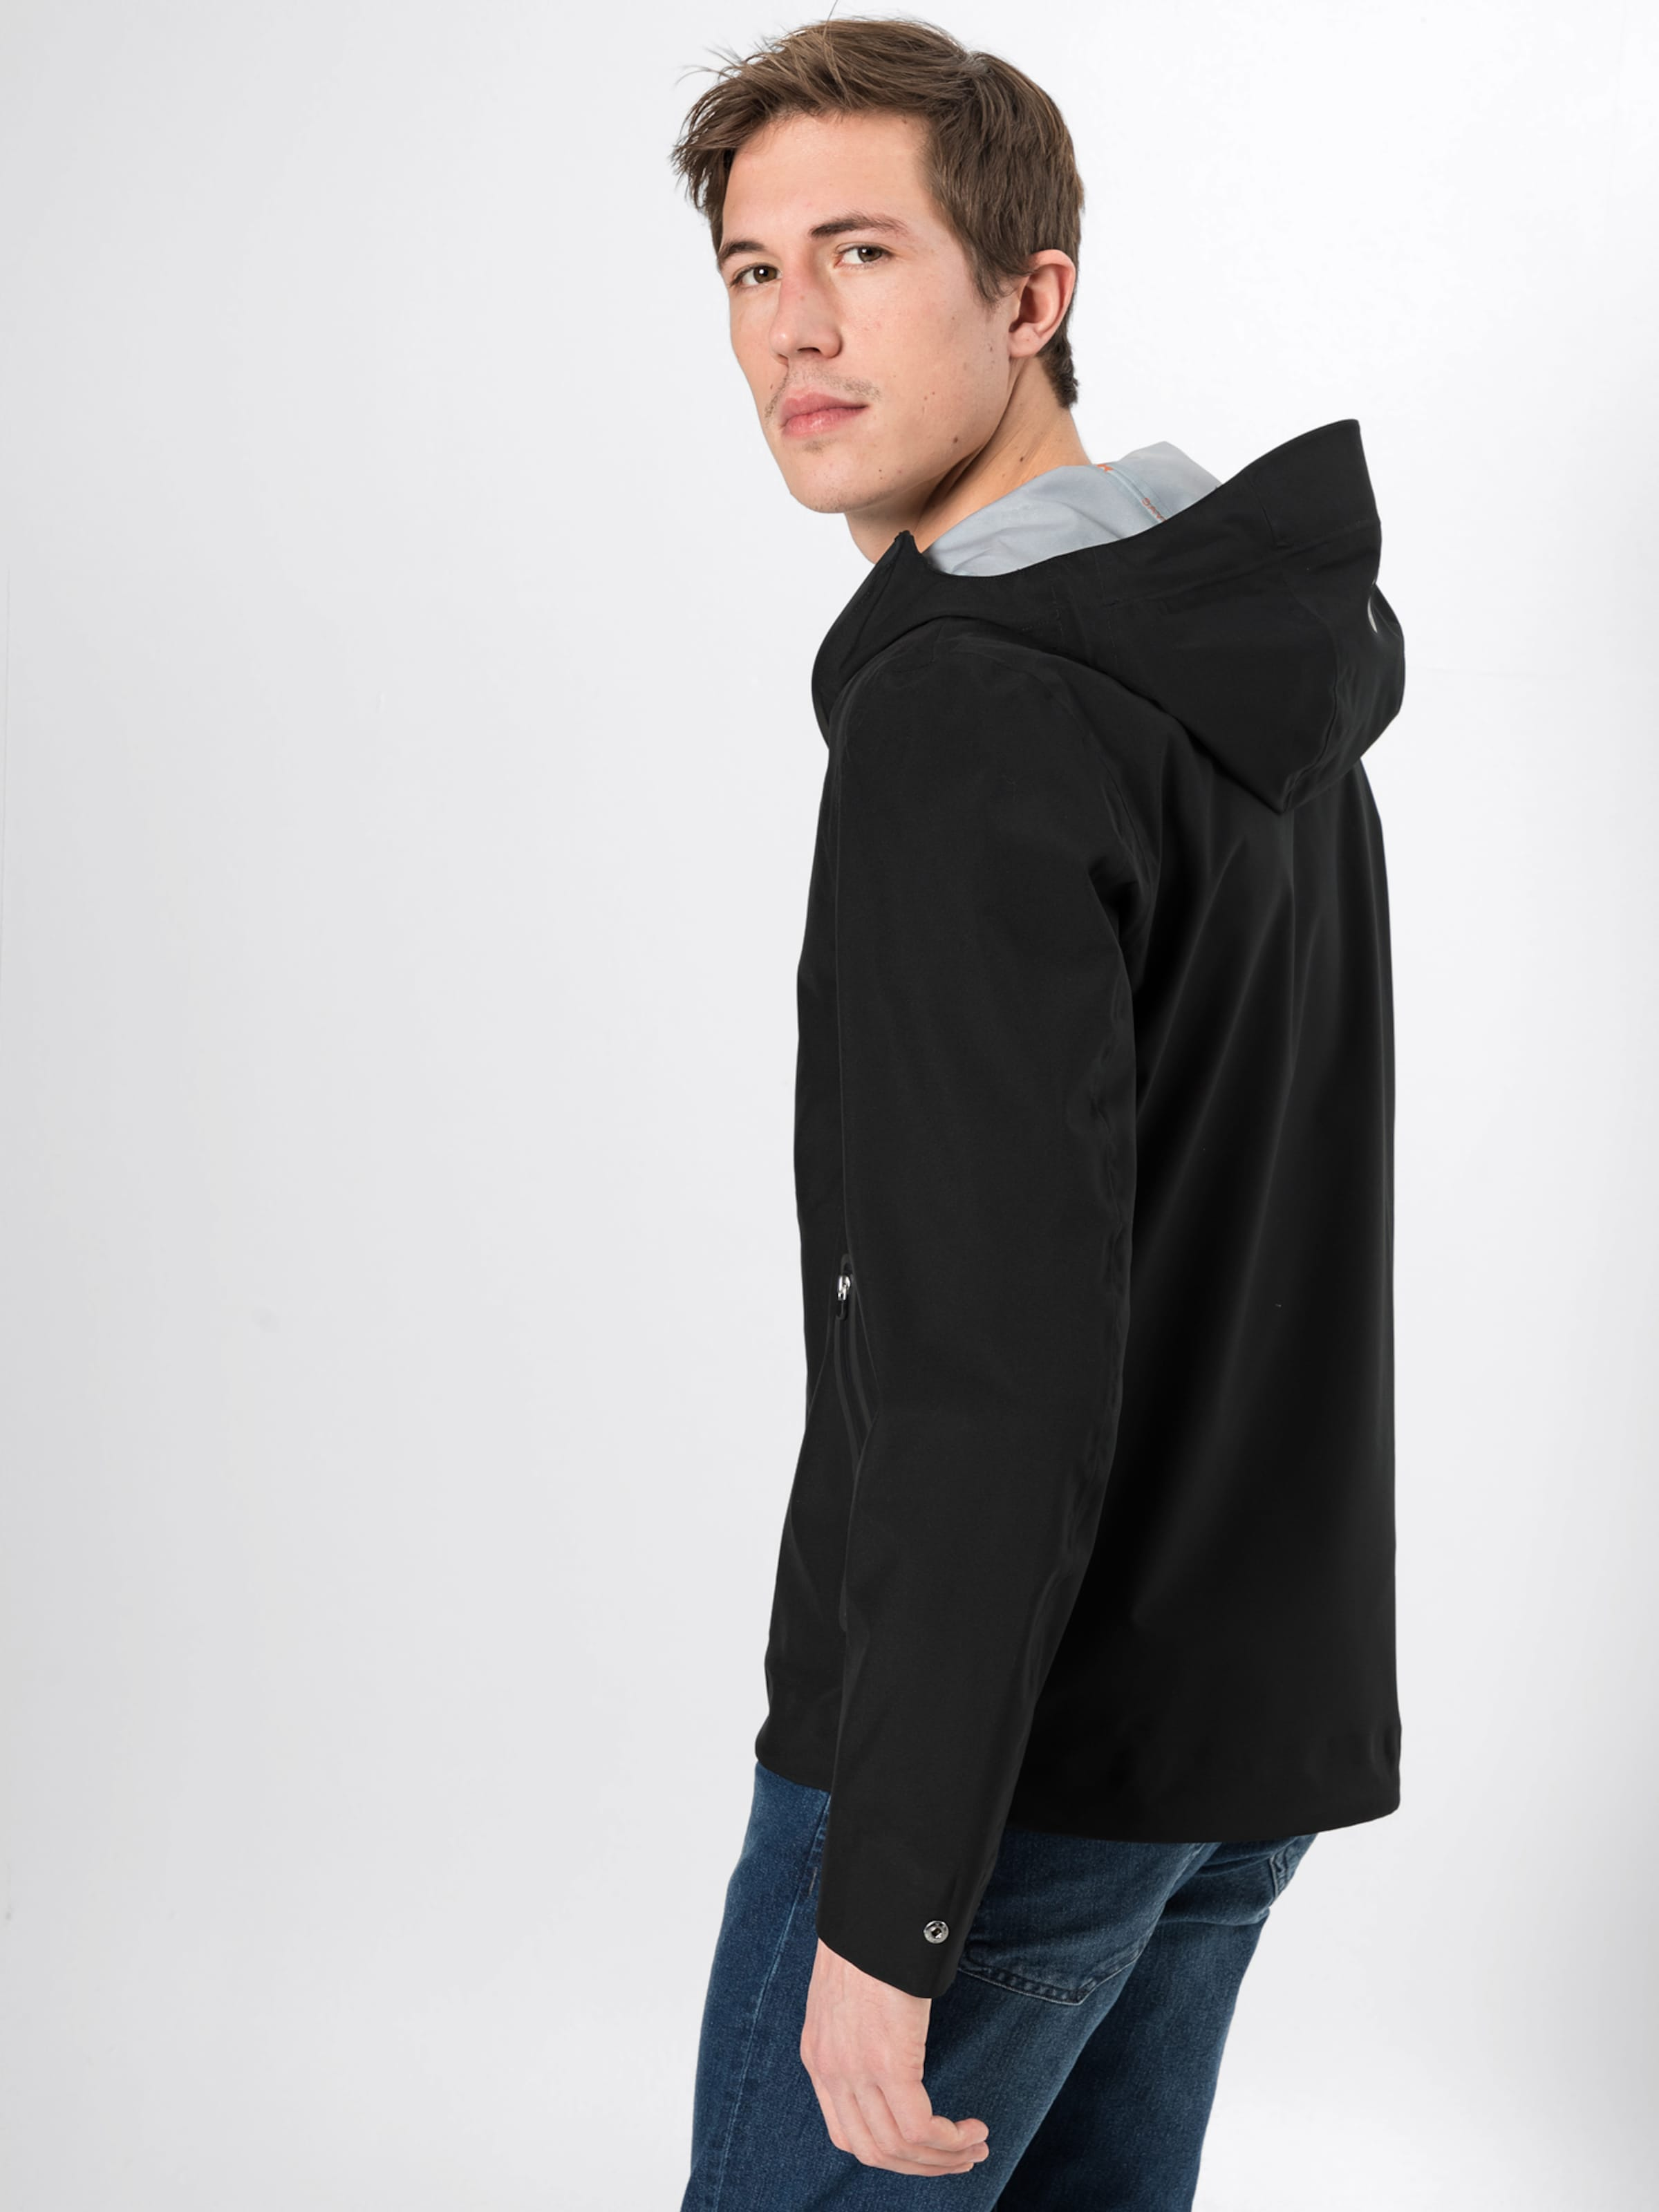 Mi En saison The Save Veste 'jacke' Duck Noir TPlkZuOXiw